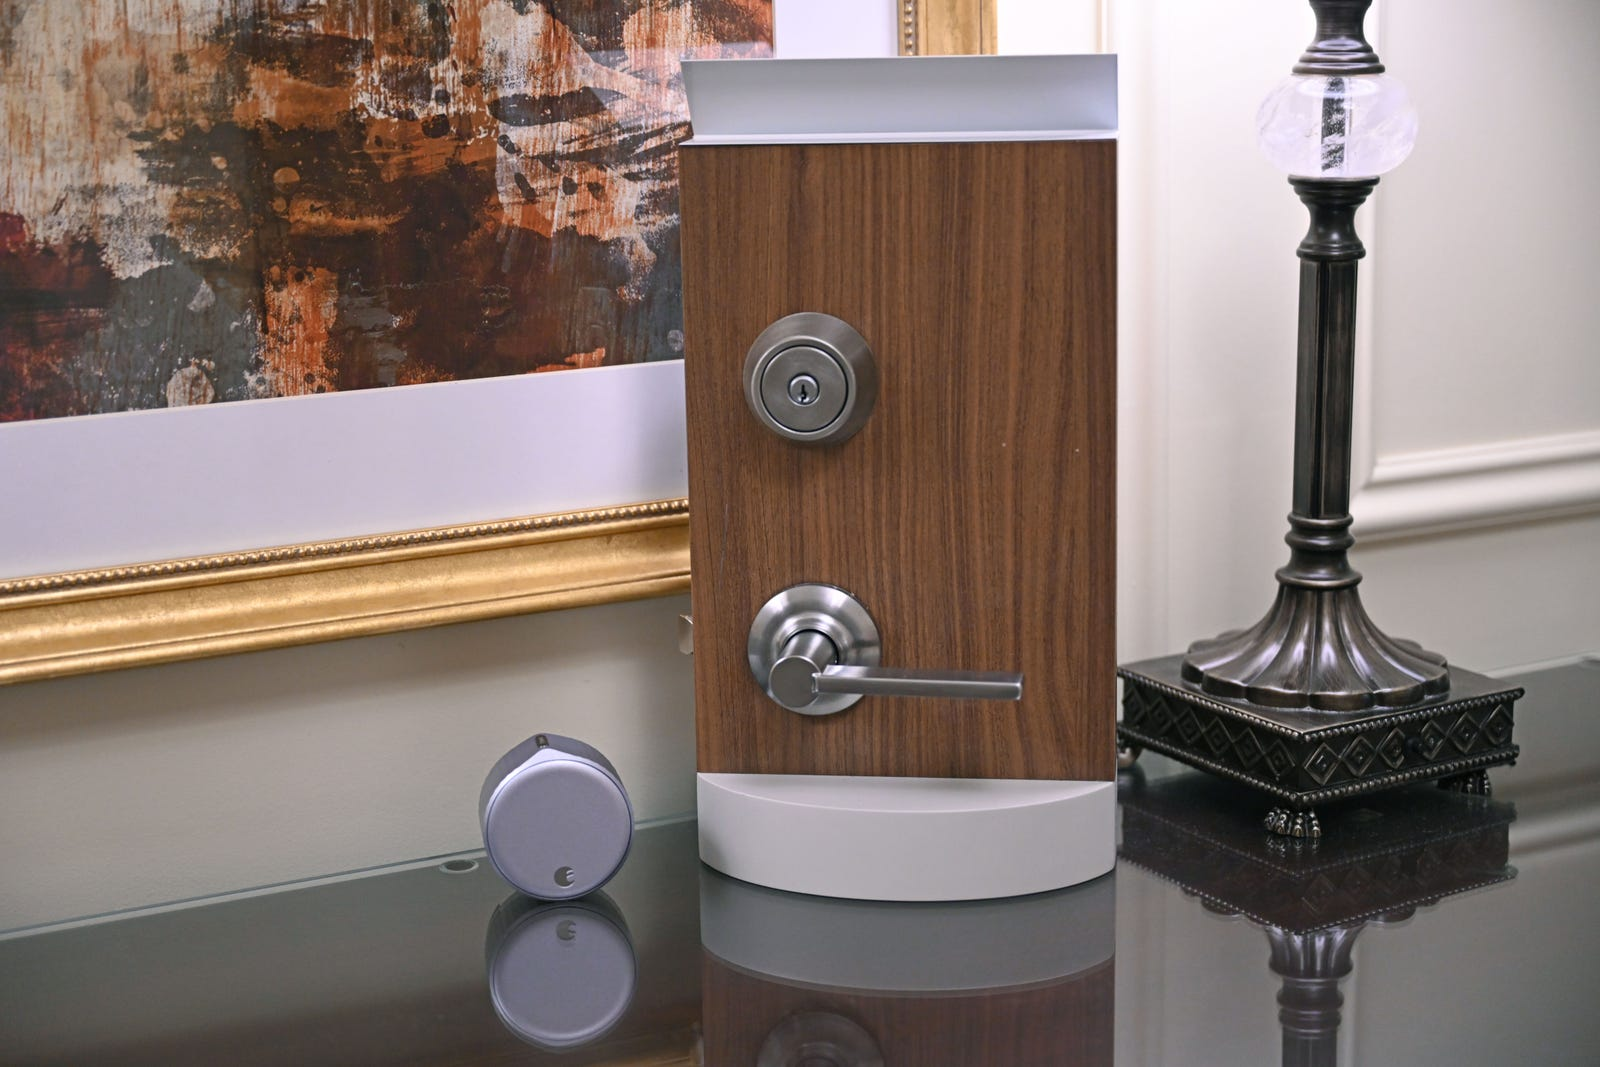 Because the Wi-Fi Smart Lock fits over the latch in the inside of your door, your deadbolt looks unchanged from the outside.